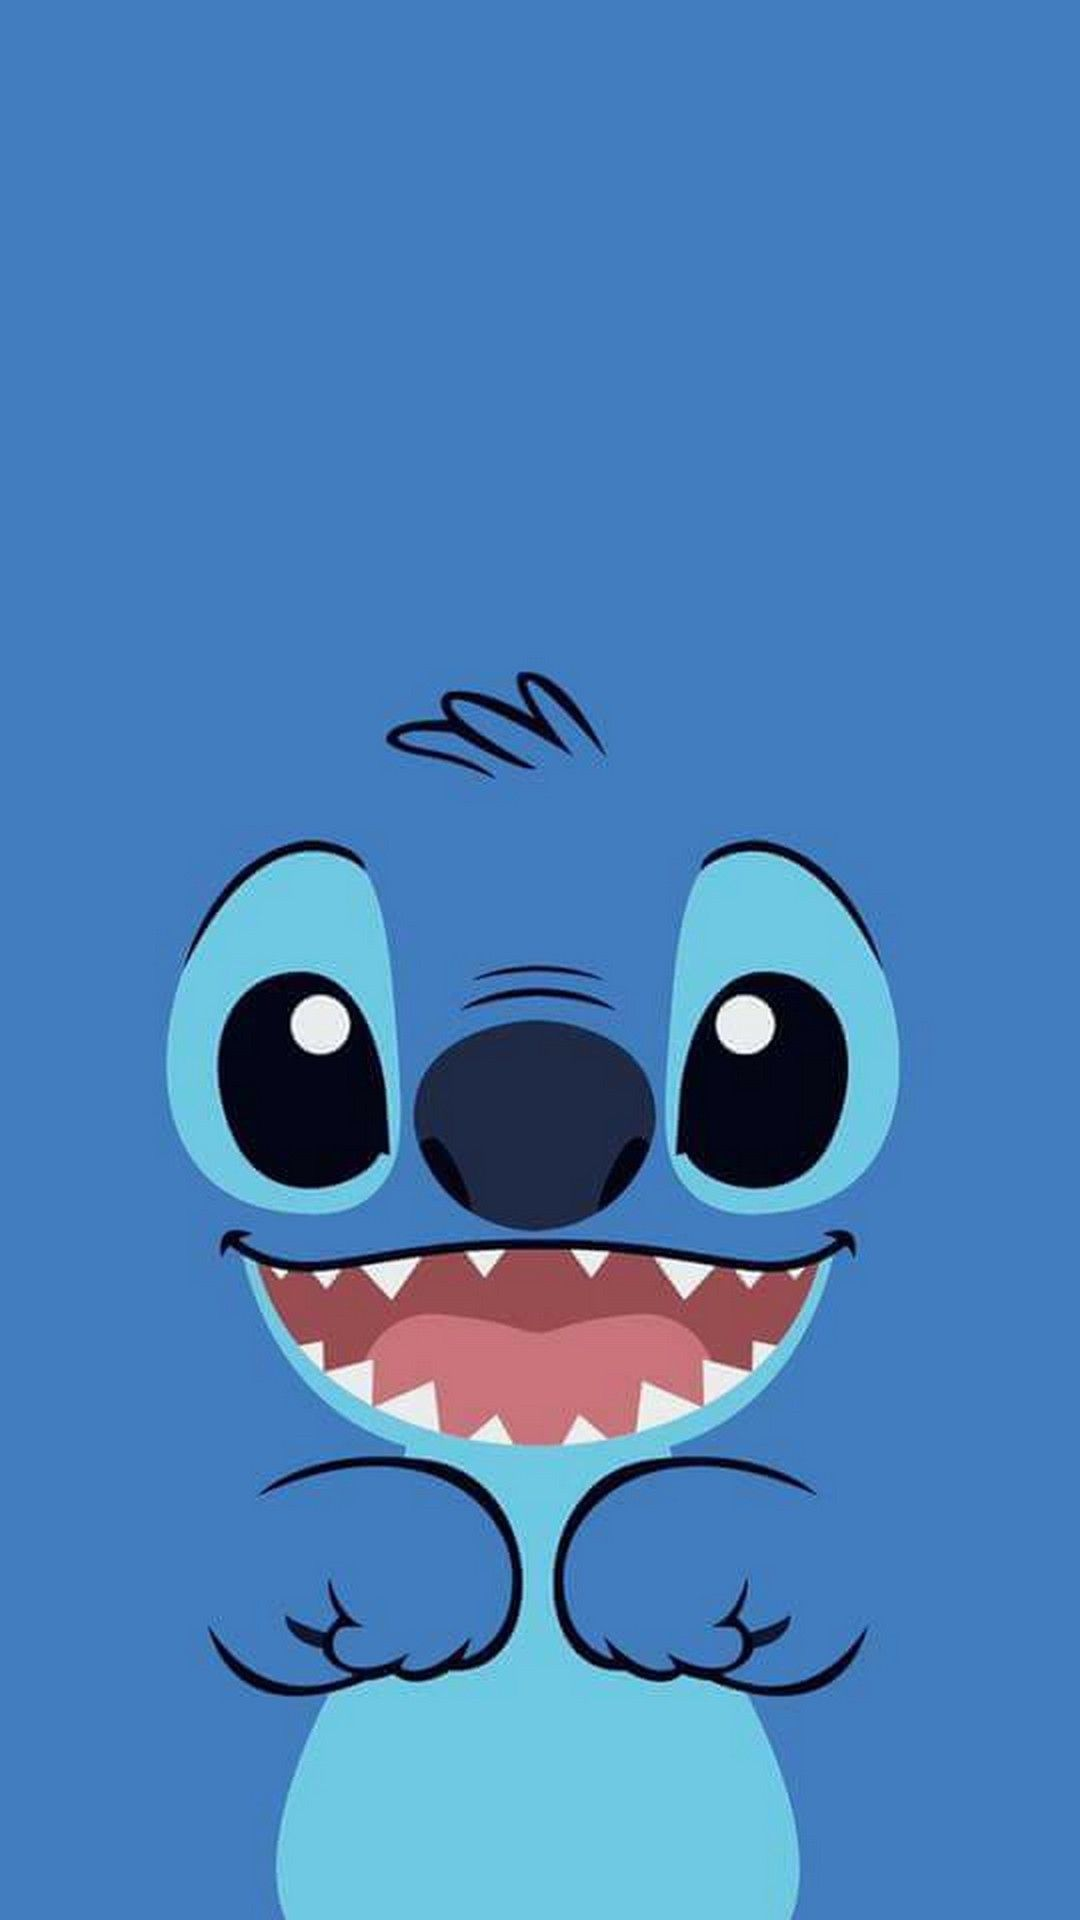 Stitch Disney Wallpaper For Mobile Android Best Hd Wallpapers Stitchdisney Stitch Disney Cartoon Wallpaper Hd Disney Phone Wallpaper Cute Cartoon Wallpapers